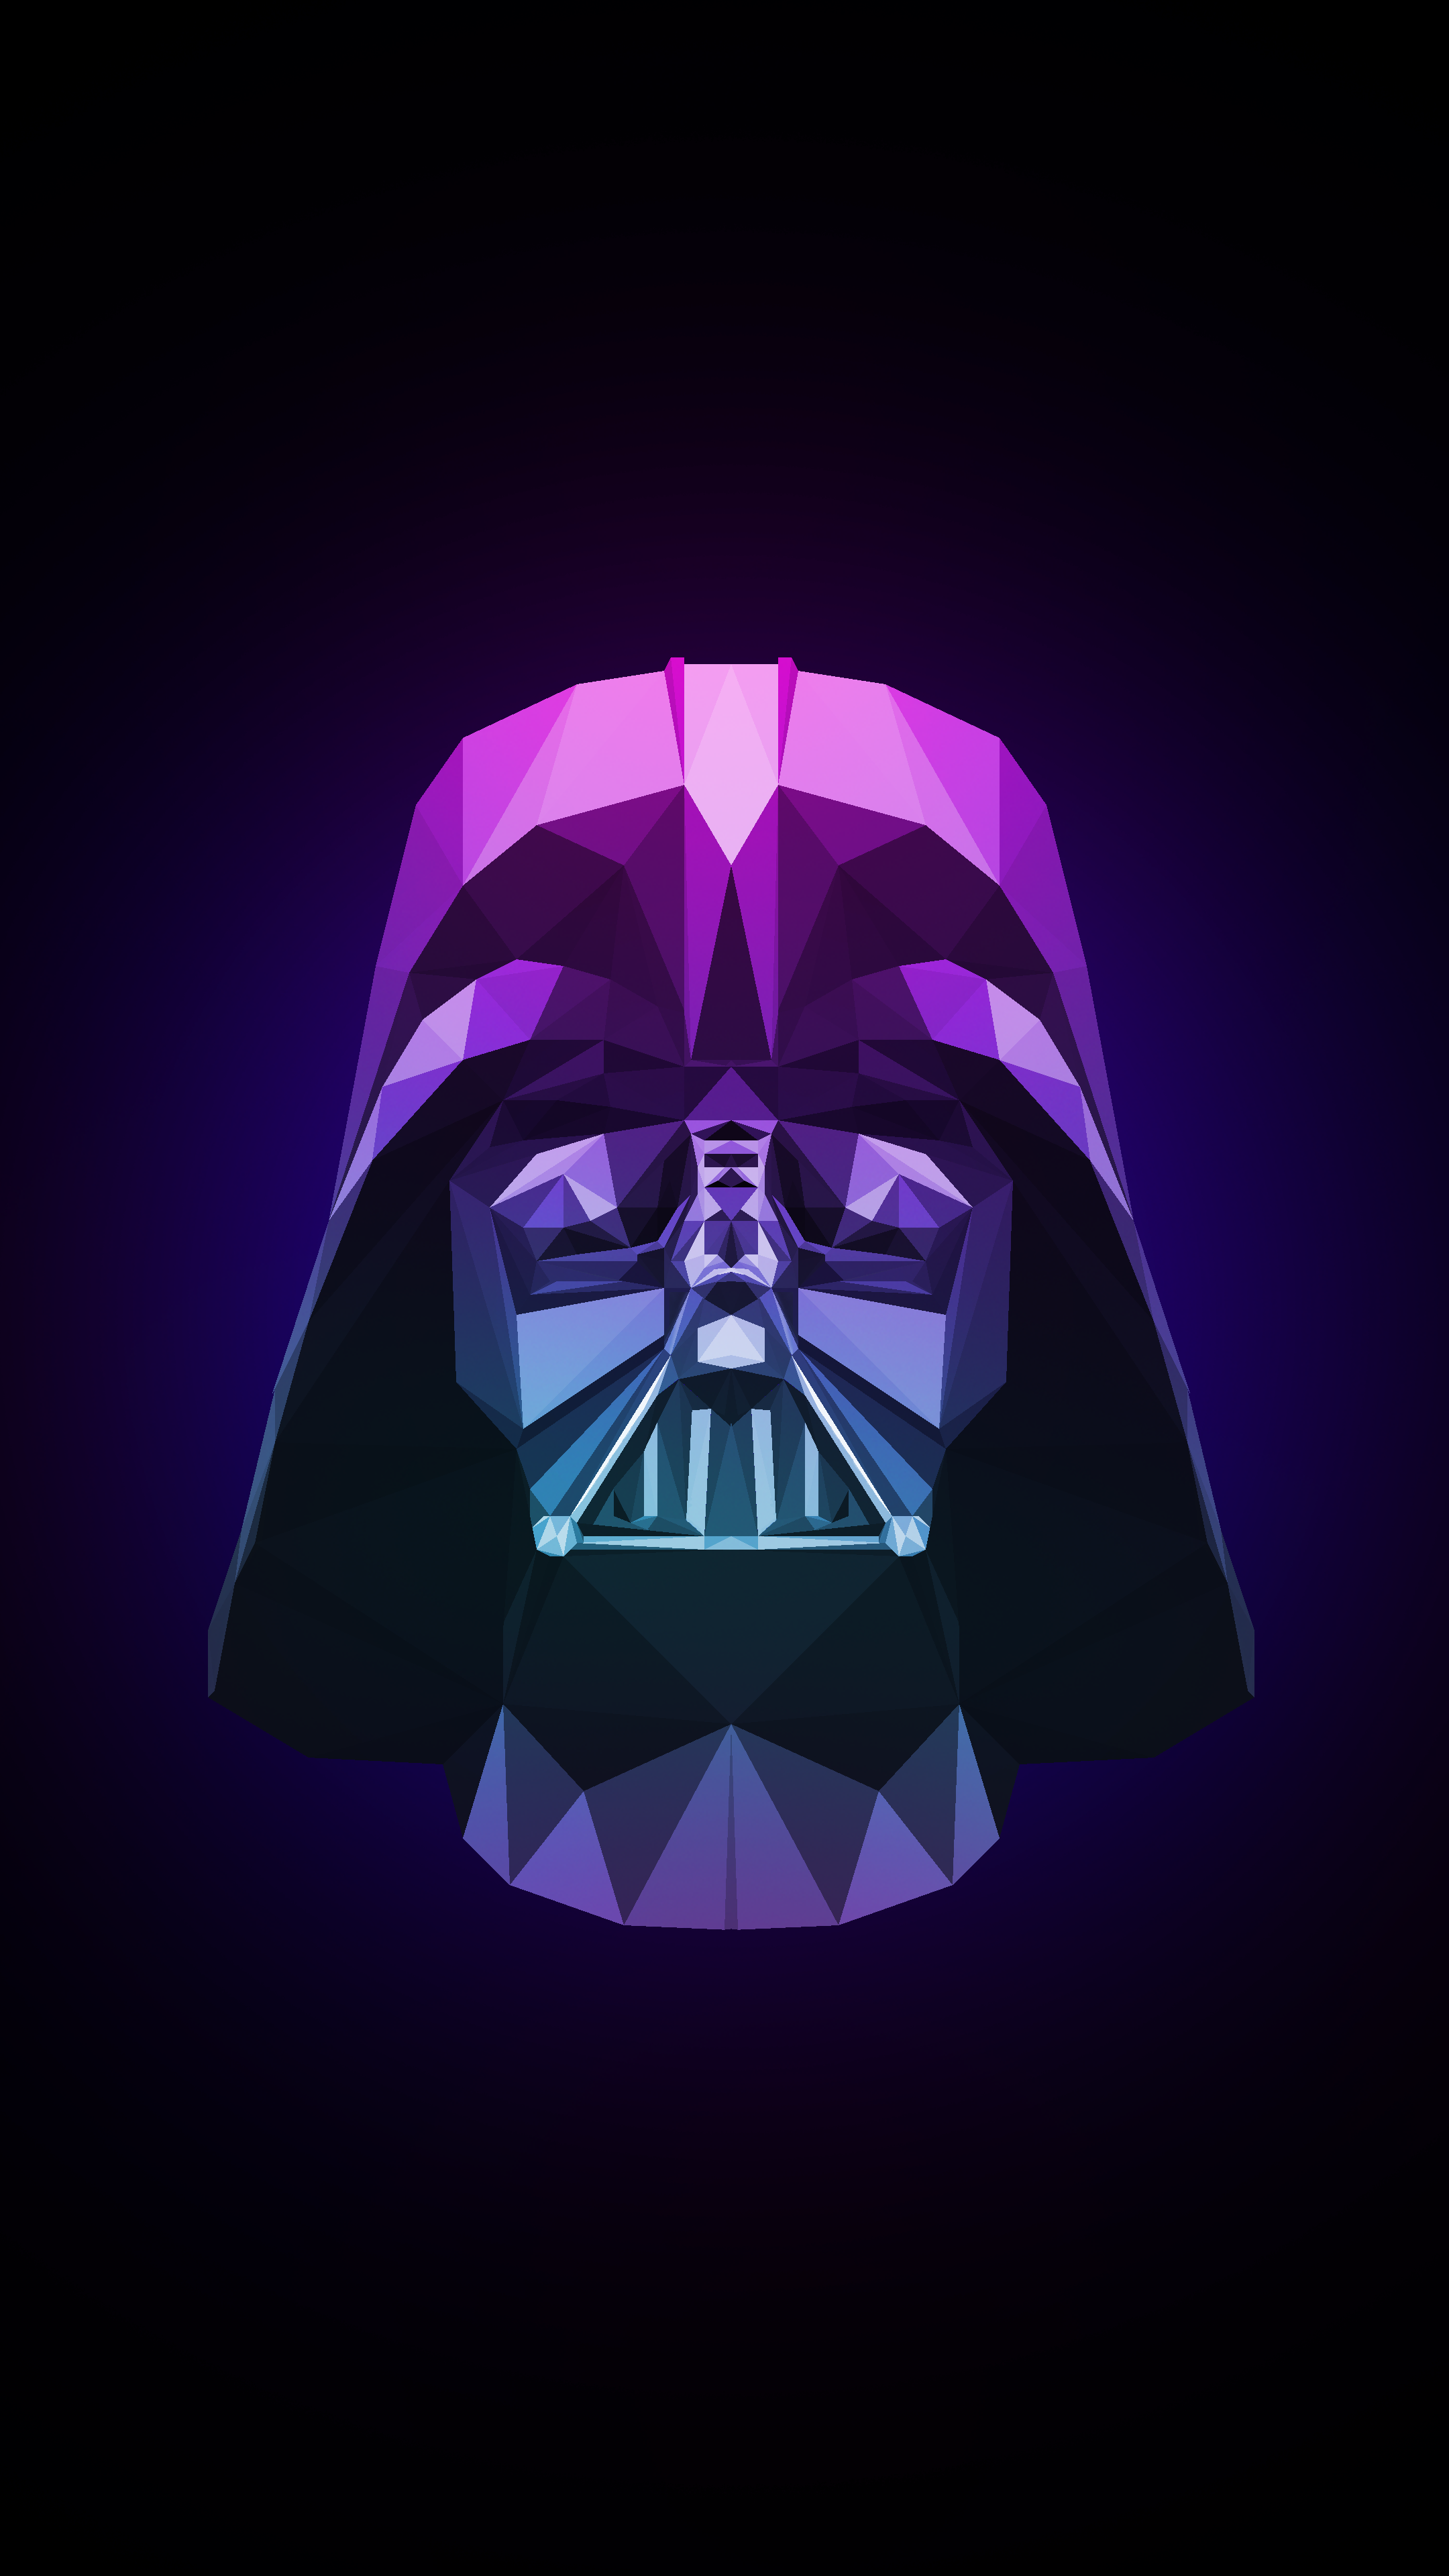 Darth Vader Hd Wallpapers Backgrounds Wallpaper Darth Vader Wallpaper Darth Vader Hd Wallpaper Star Wars Poster